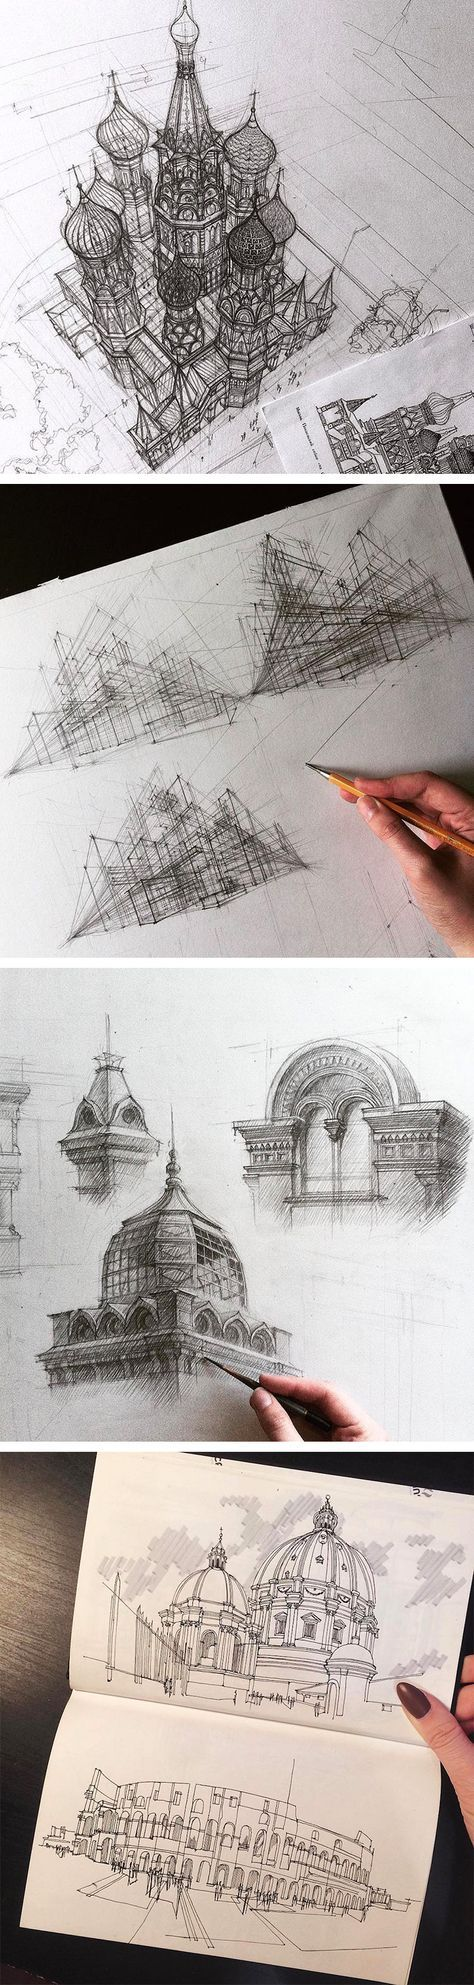 Hand Drawn Architectural Sketches by Adelina Gareeva is part of architecture - Architecture student Adelina Gareeva drafts her work by hand, creating extremely detailed architectural portraits by putting pencil to paper rather than stylus to tablet  Gareeva has created an Instagram account for her laborious sketches, publishing drawings she's completed of the Panthéon in Paris